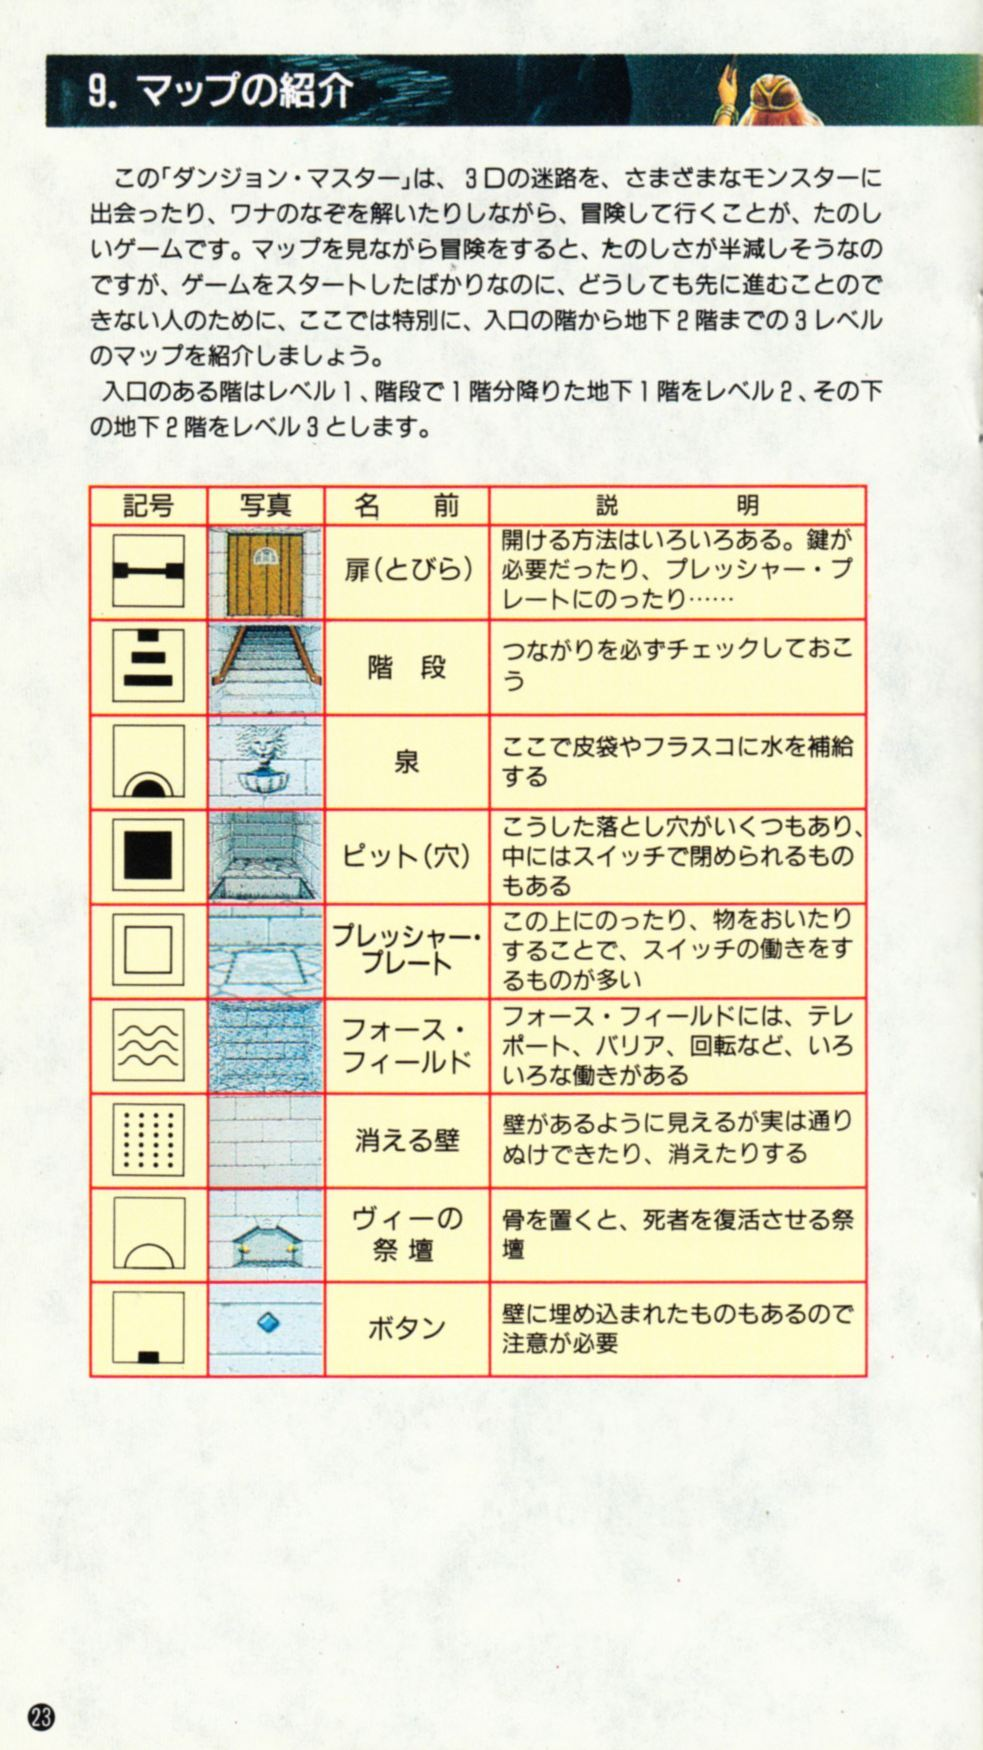 Game - Dungeon Master - JP - Super Famicom - Manual - Page 026 - Scan